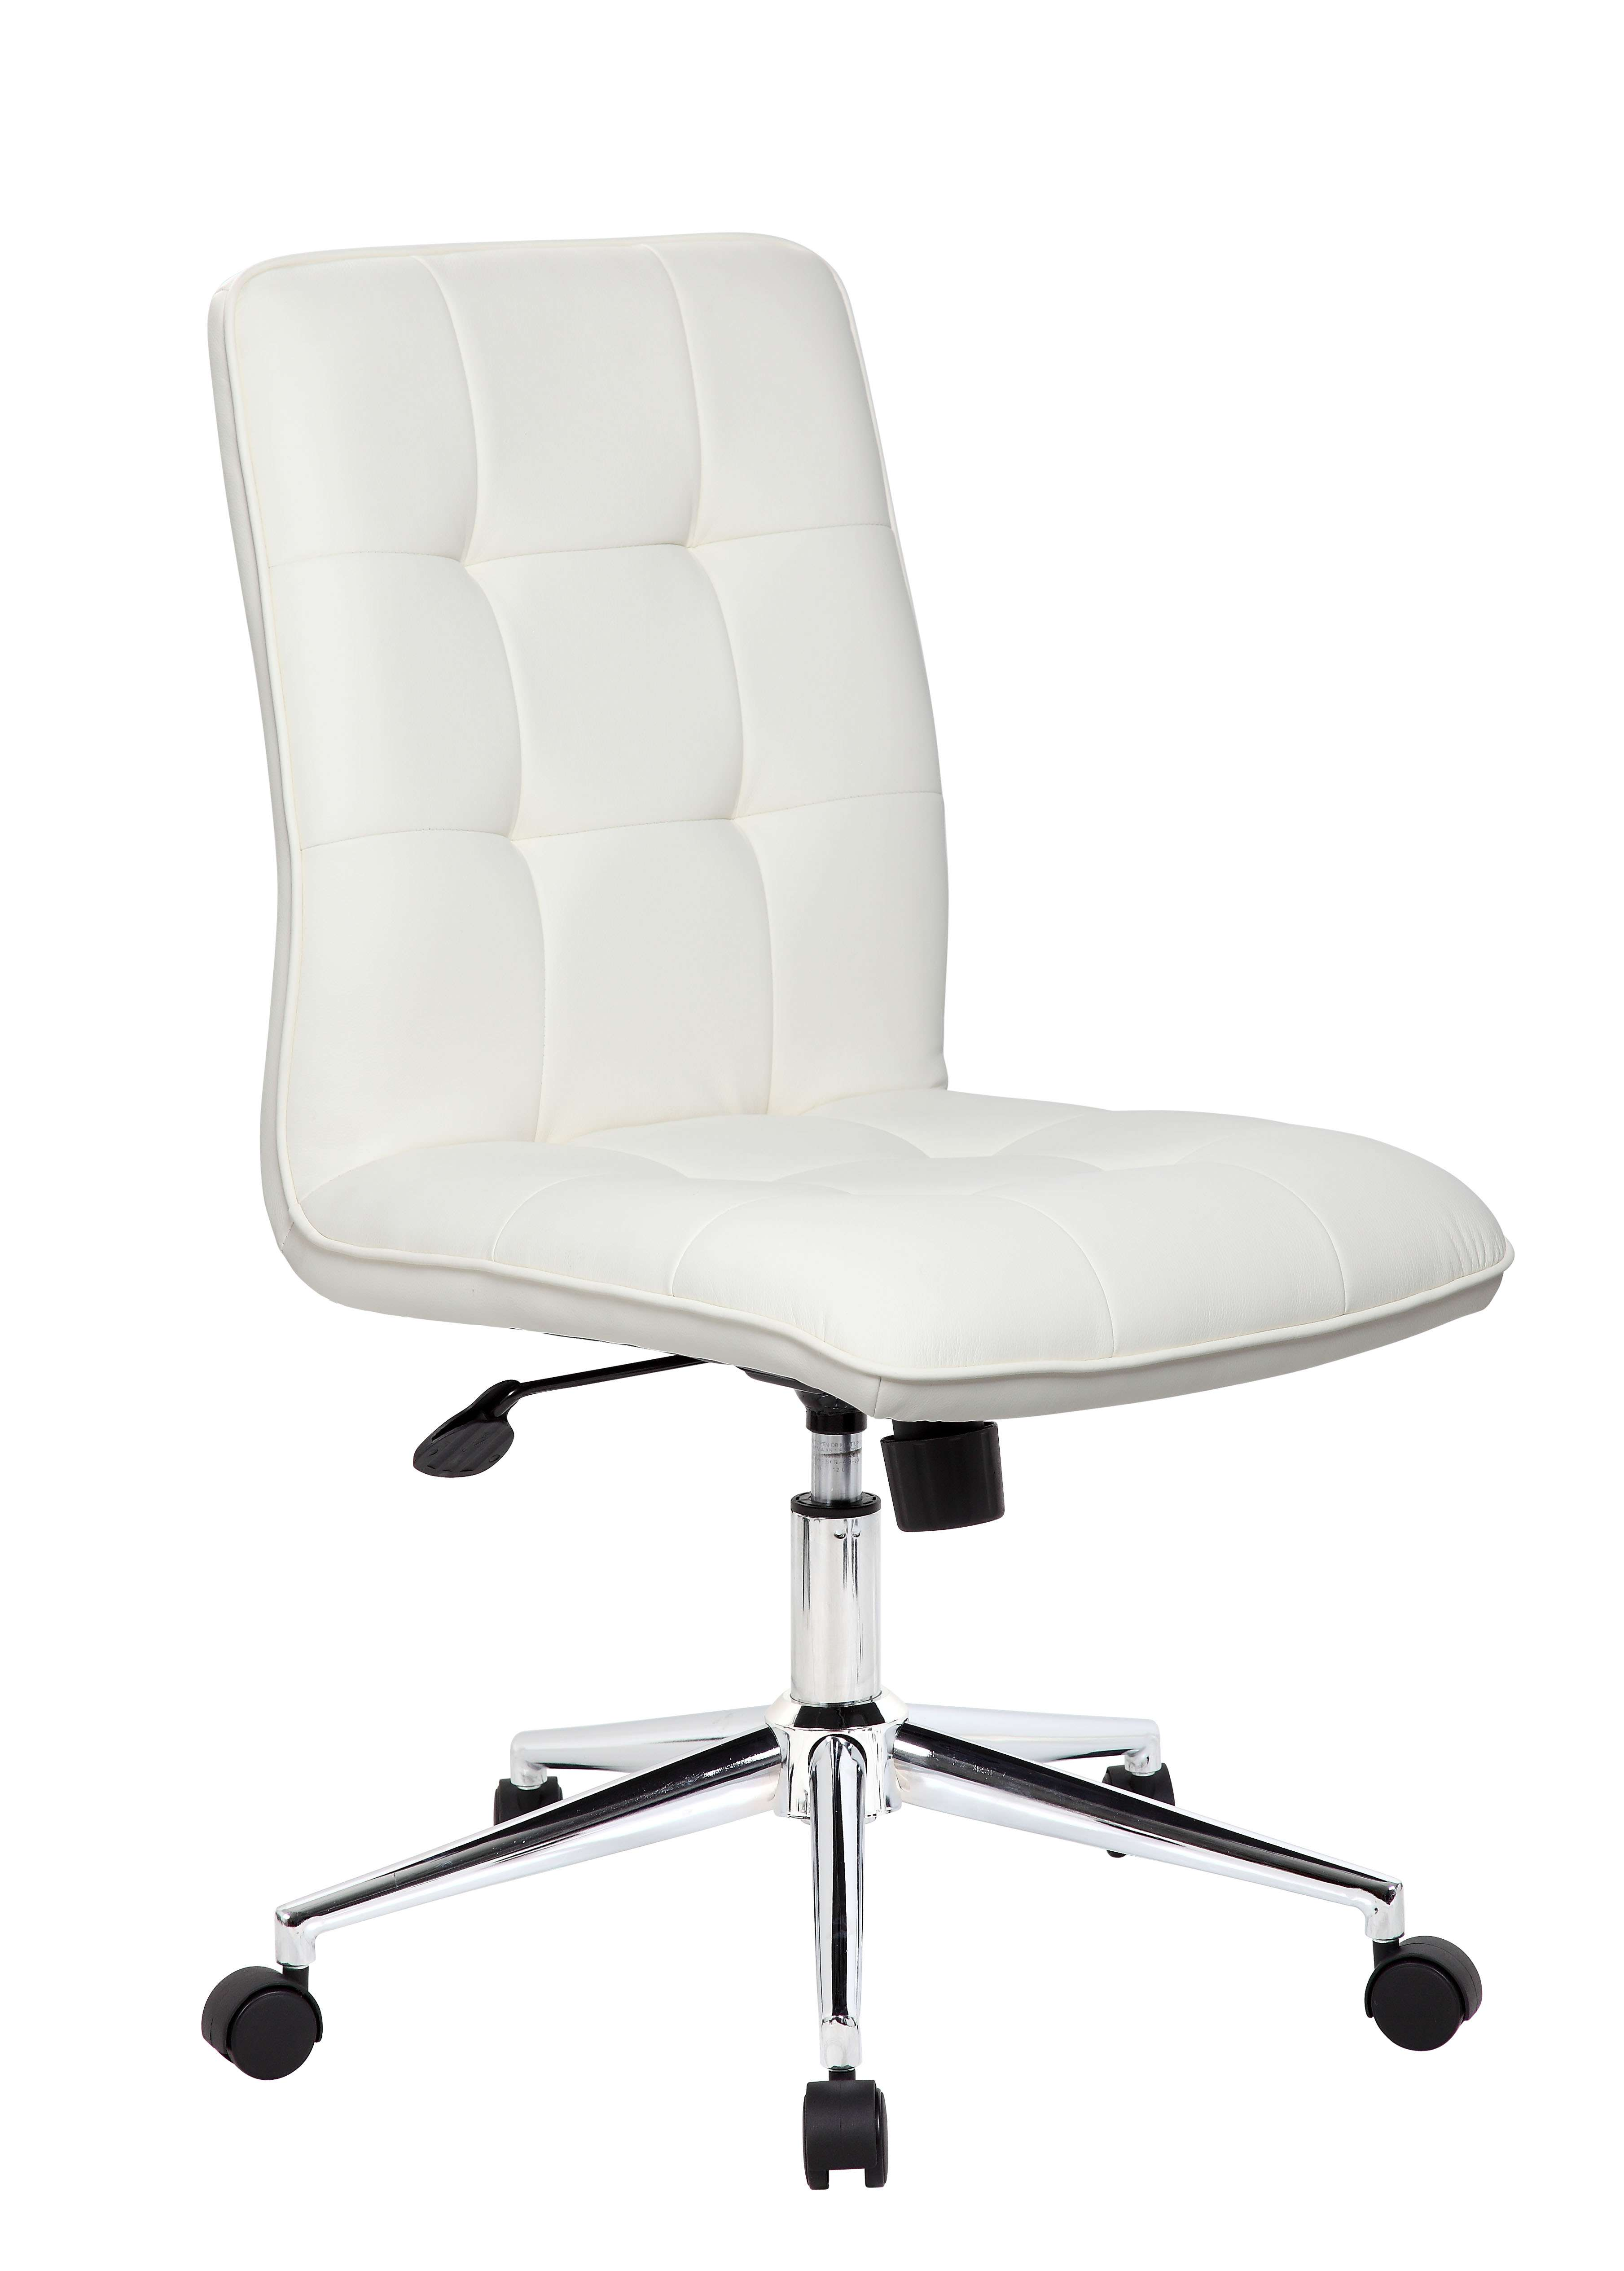 Attrayant Boss Office Products B330 WT. White Modern Office Chair In Chrome Finish